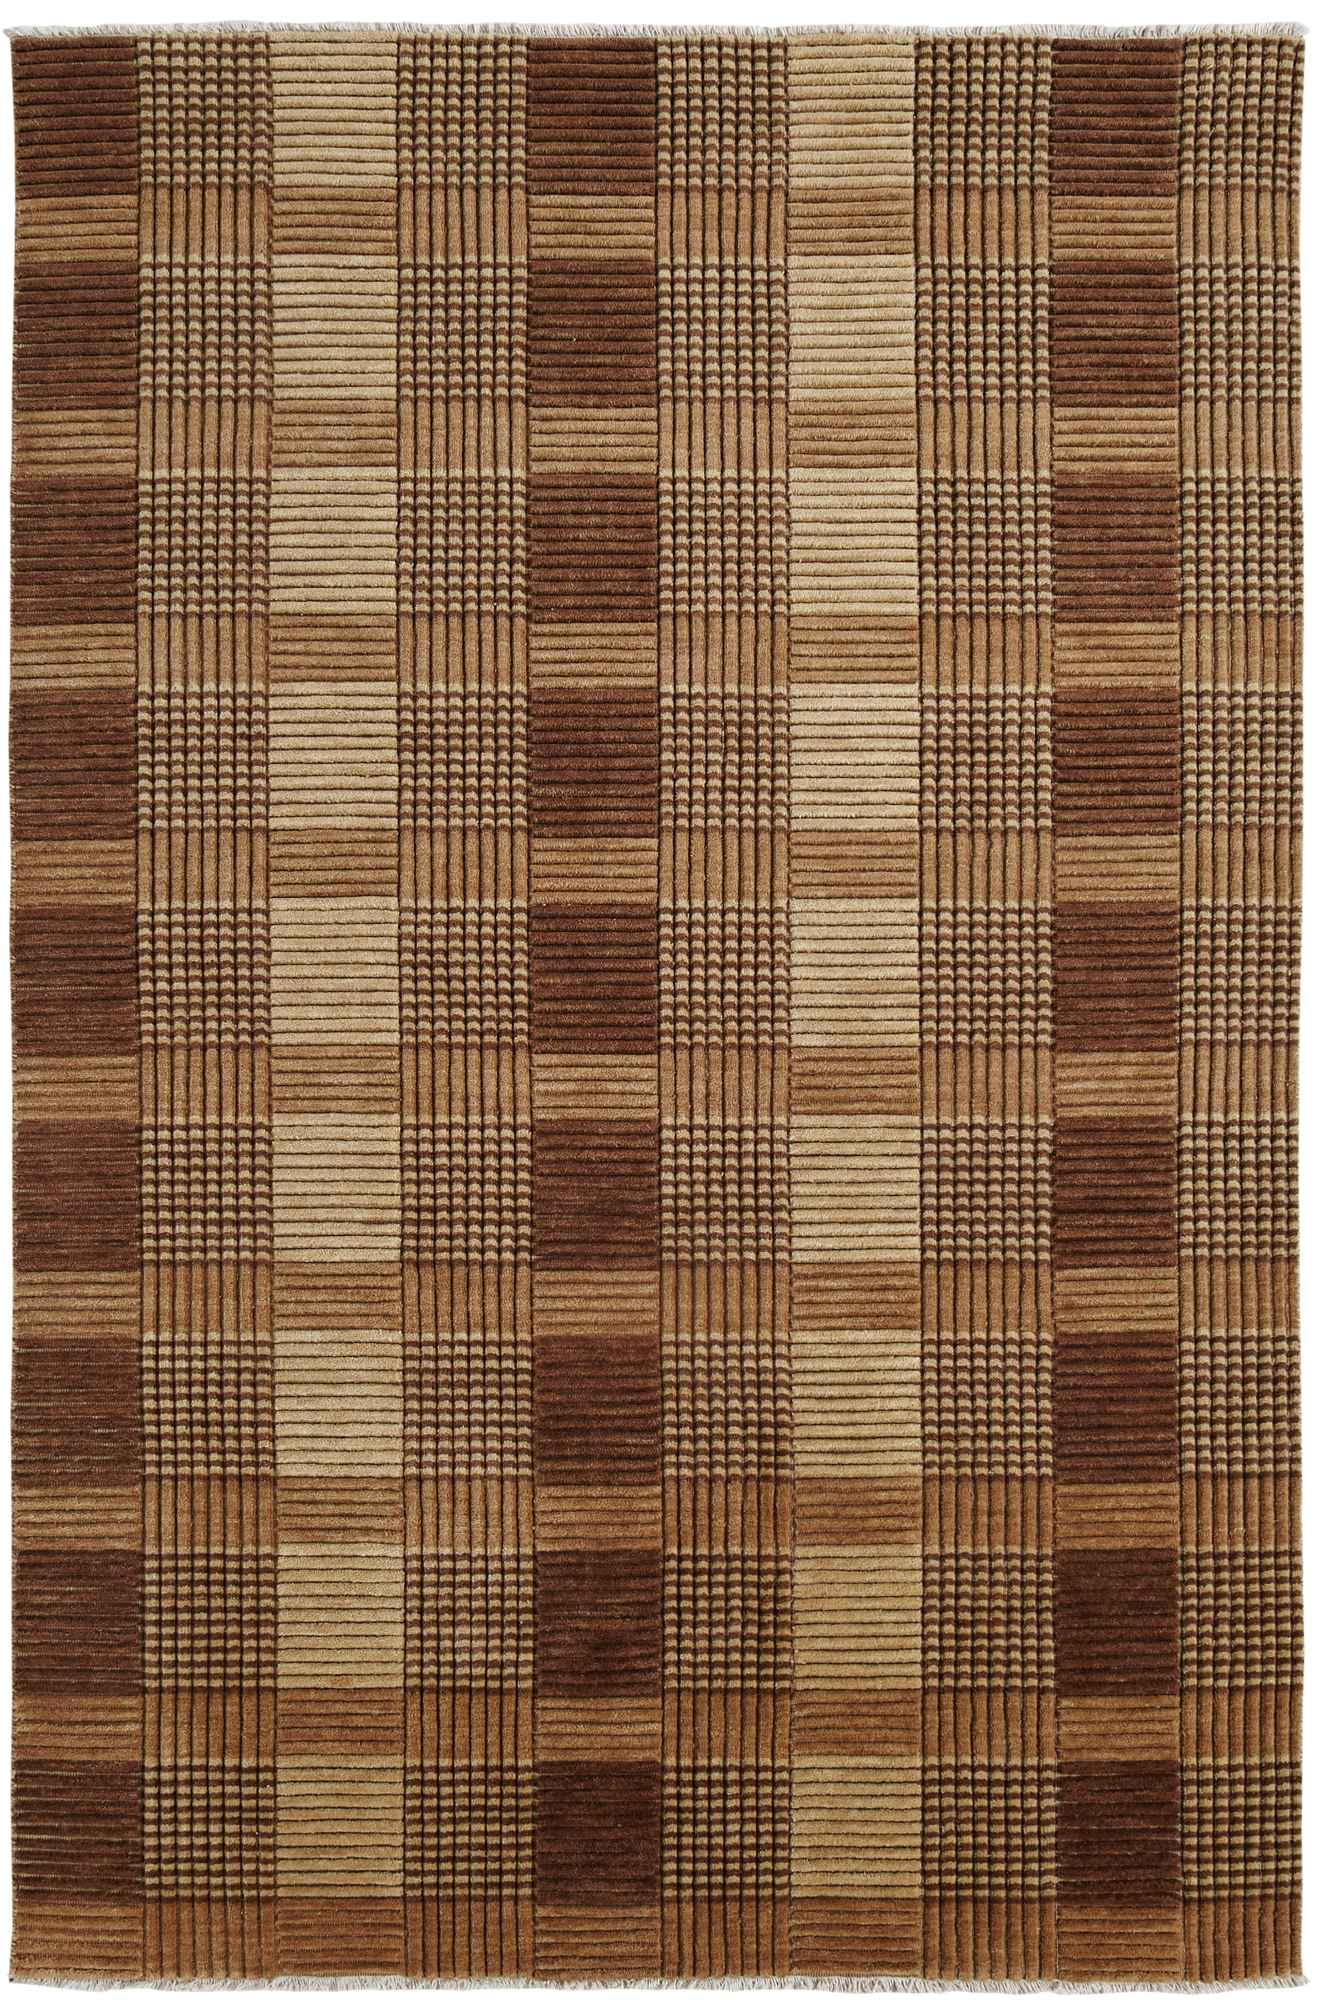 Dynamic Rugs Lounge Geometric Brown 9899 Area Rug